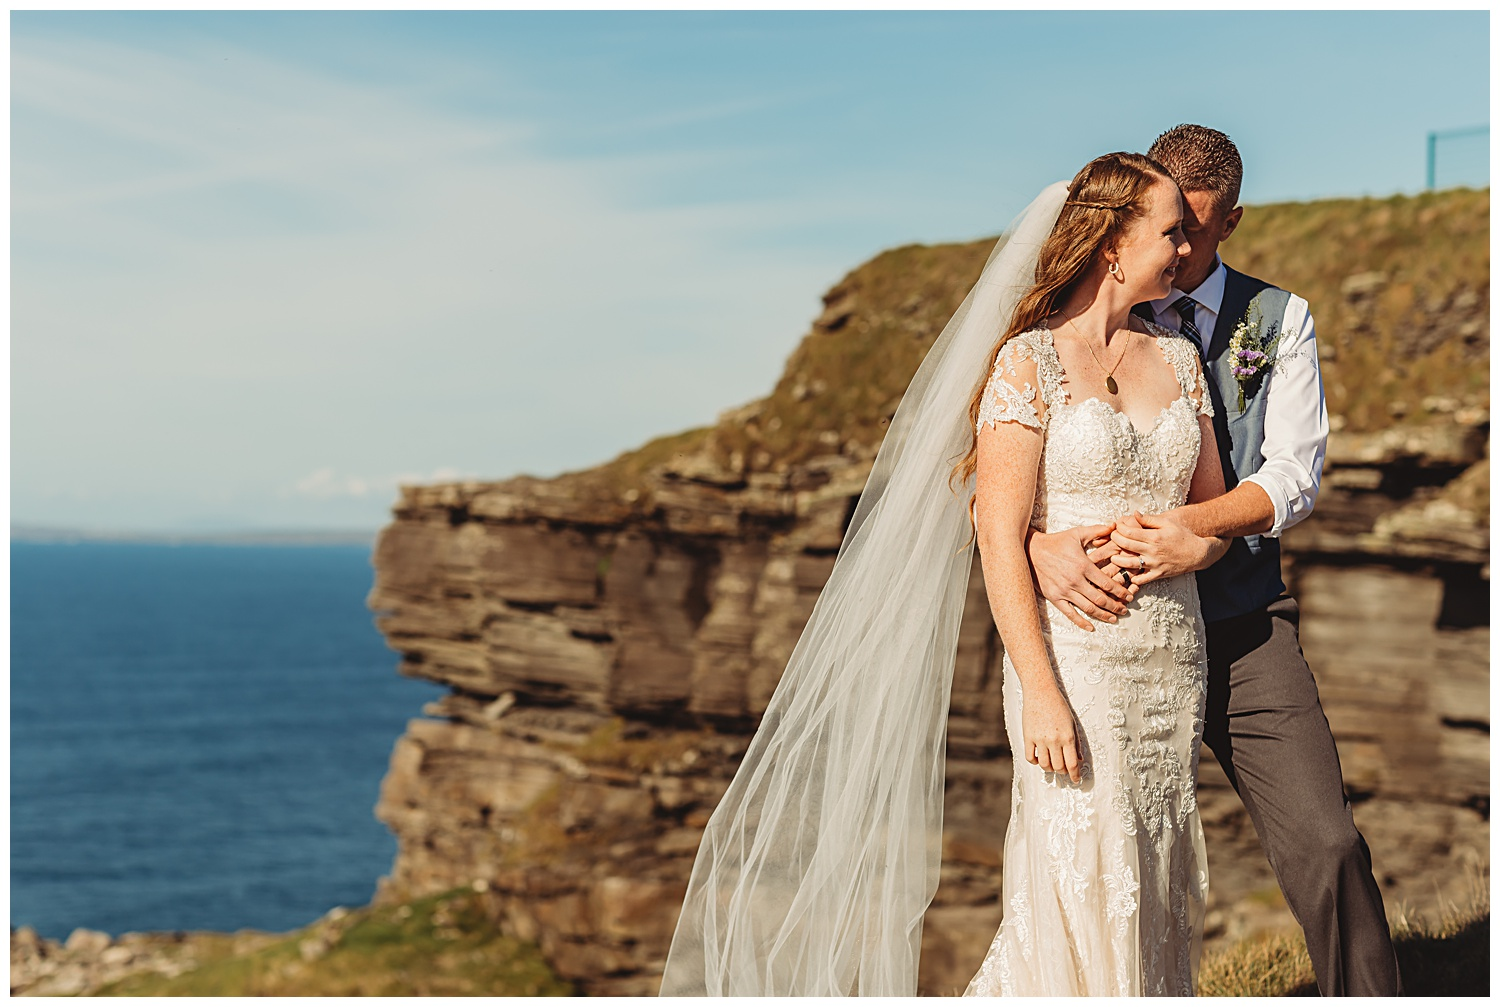 The Cliffs of Moher Destination Wedding Liscannor, County Clare, Ireland_1261.jpg